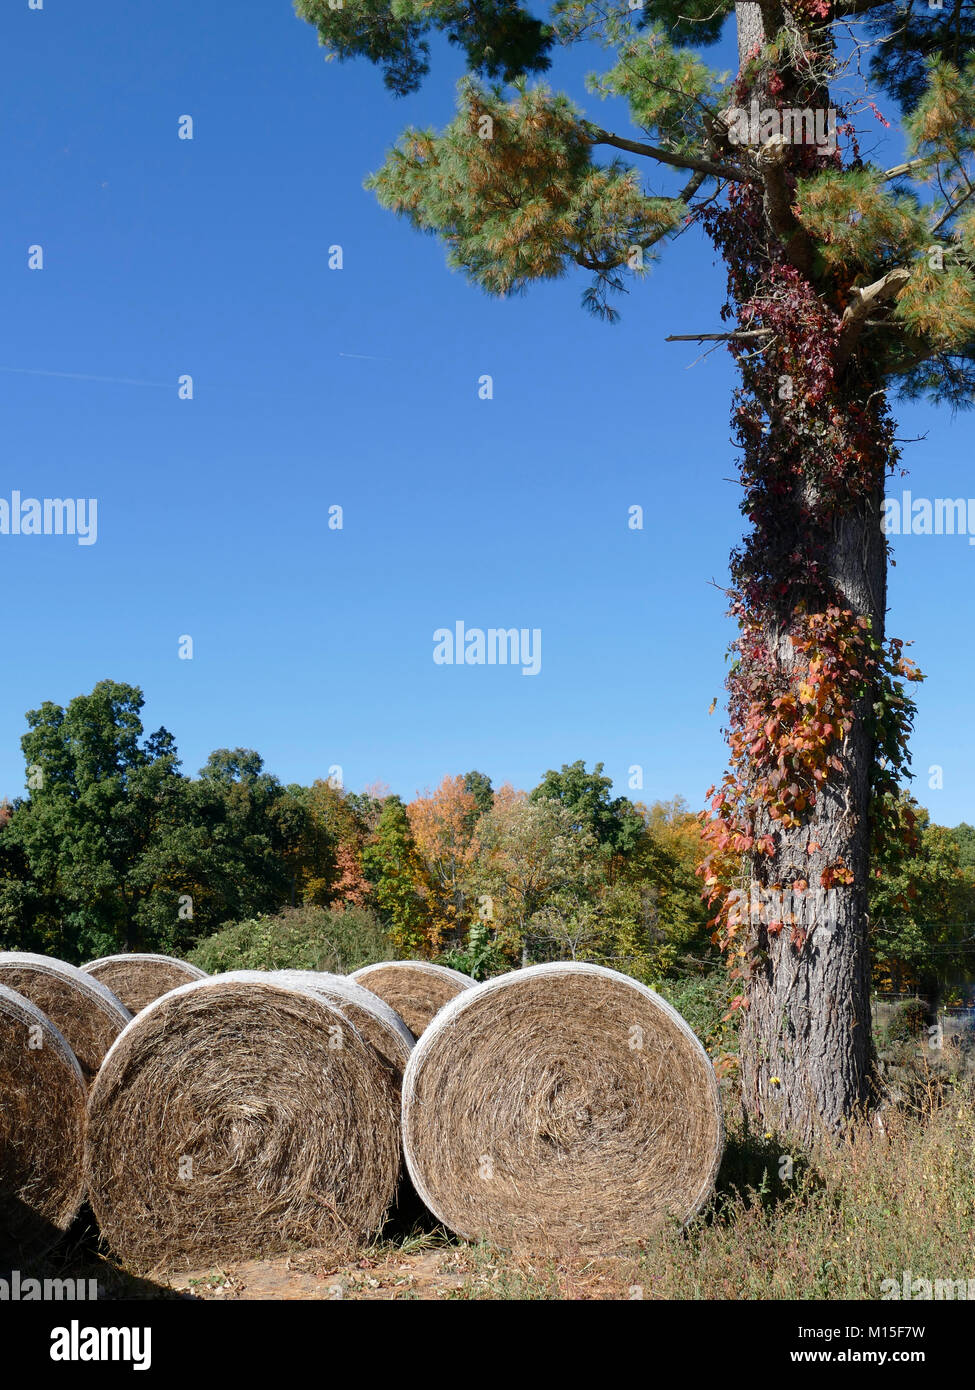 Rolled-up Hay Outside next to a Tree Stock Photo